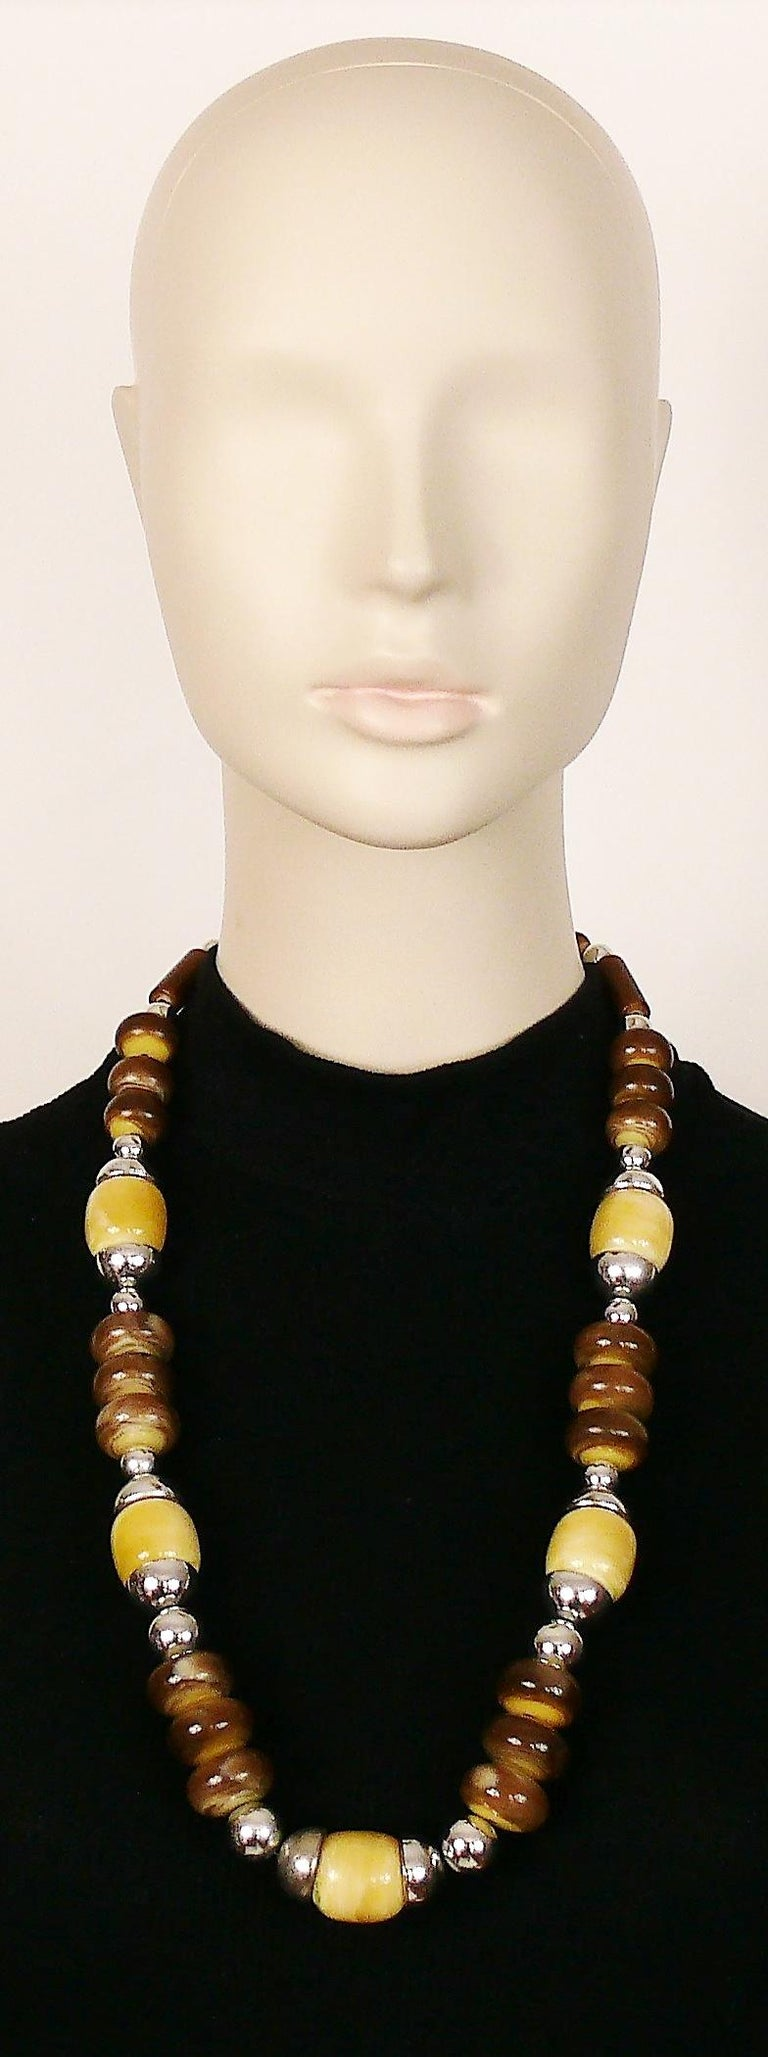 YVES SAINT LAURENT vintage 1970s necklace featuring faux horn and faux ivory graduated resin beads with sivler toned elements.  Embossed YSL on a metal tag.  Indicative measurements : length worn approx. 33 cm (12.99 inches).  JEWELRY CONDITION